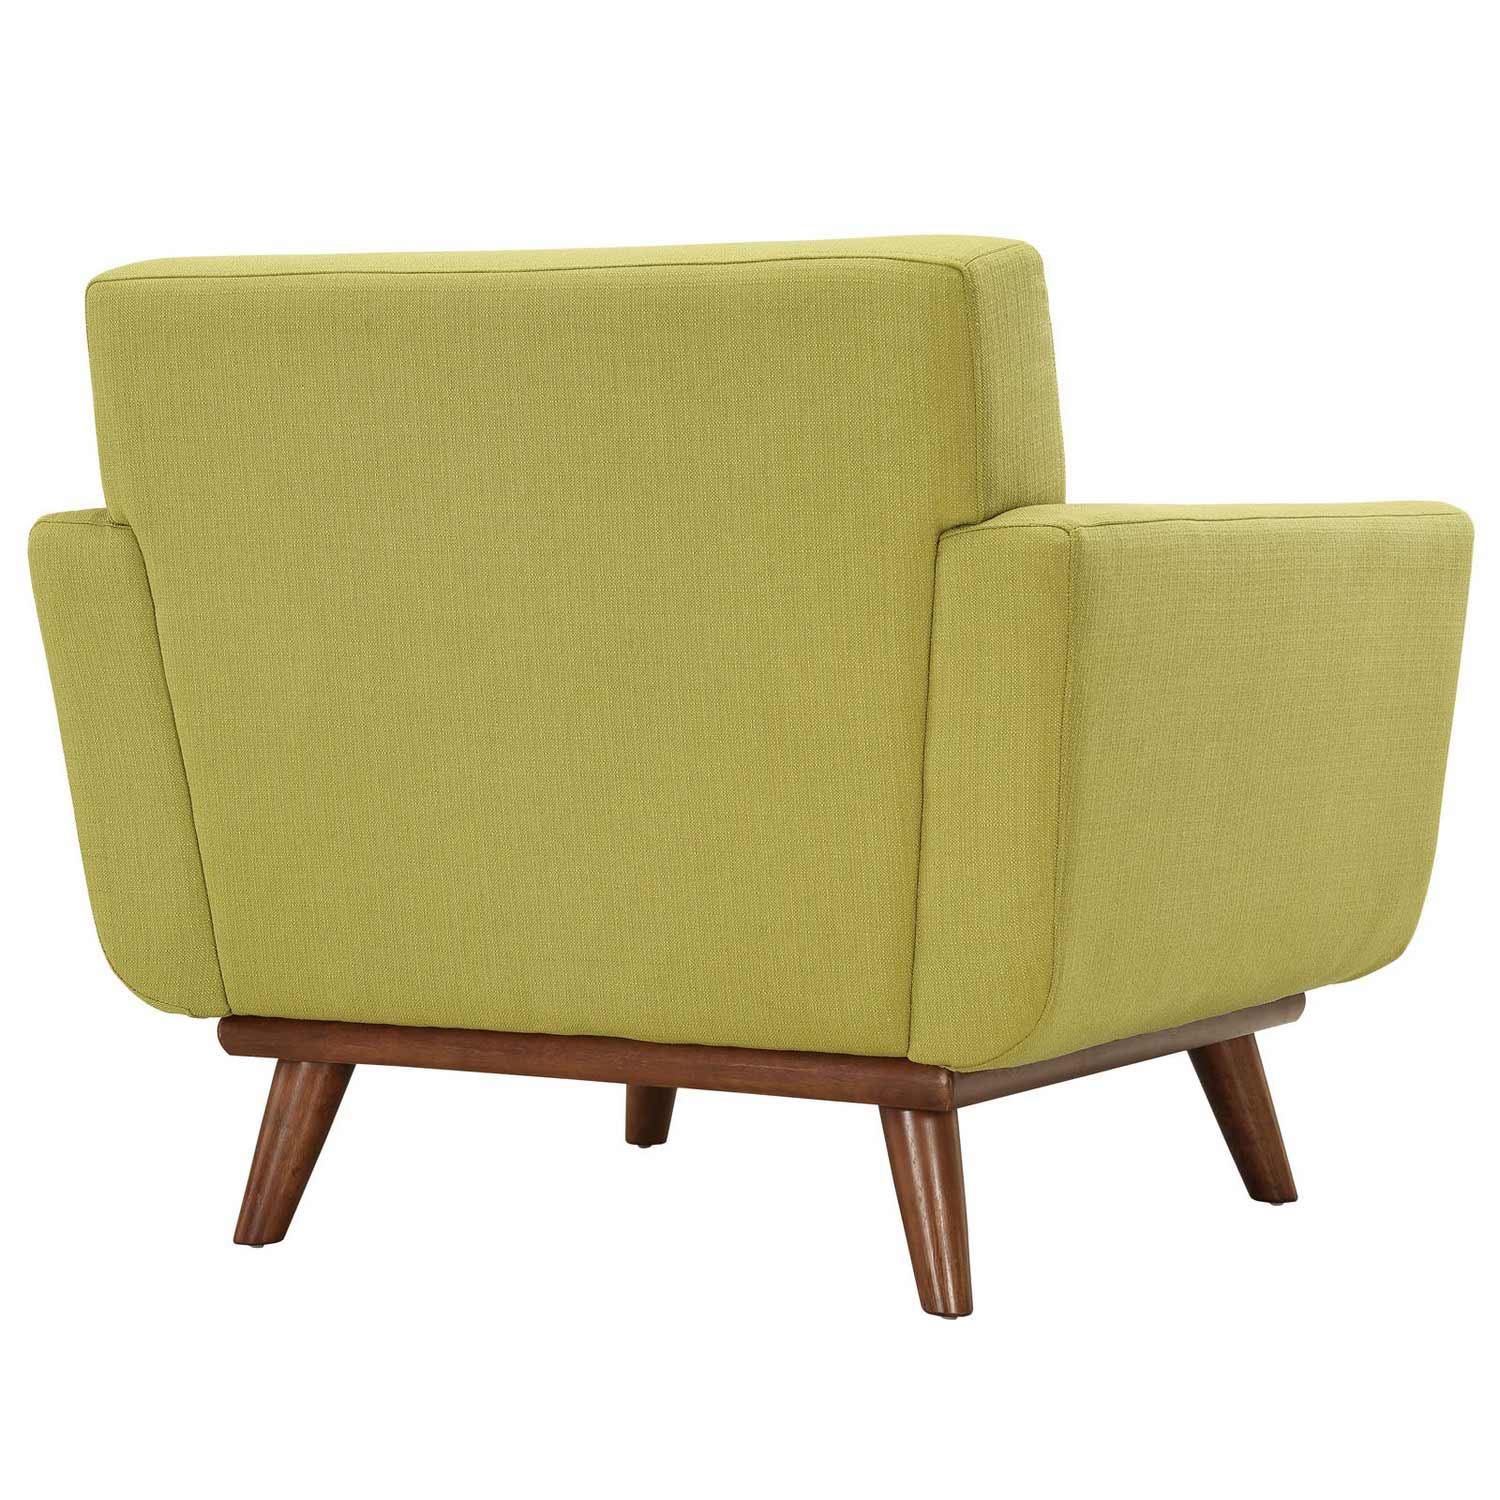 Modway Engage Armchair Wood Set of 2 - Wheatgrass